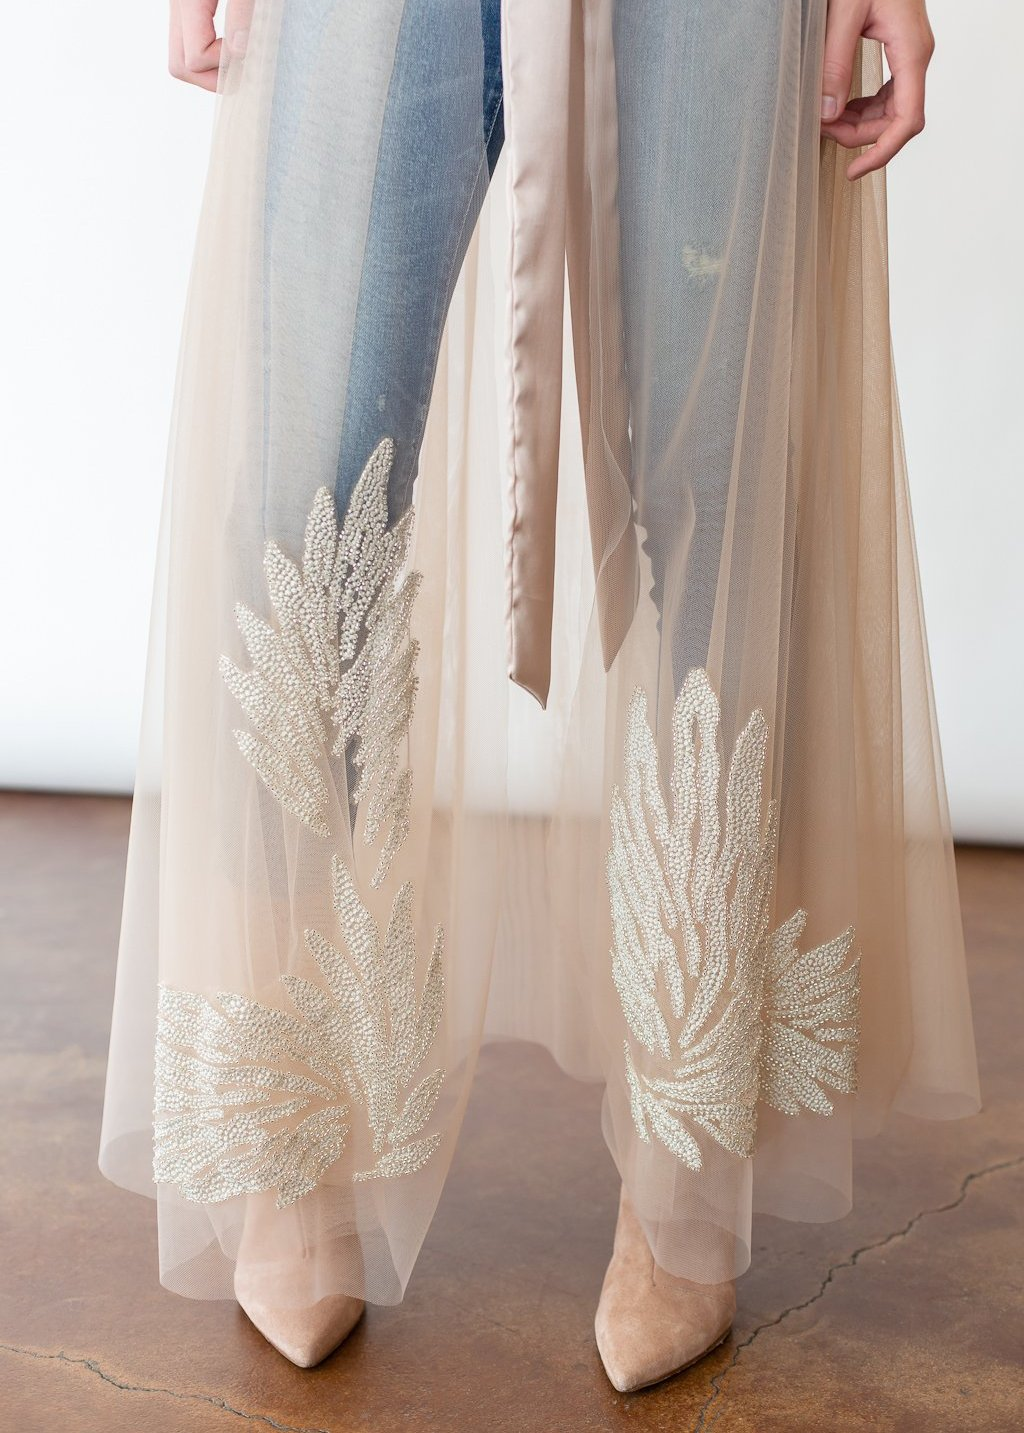 ELIZABETH Tulle Embroidered Wrap Skirt - Shop Tula